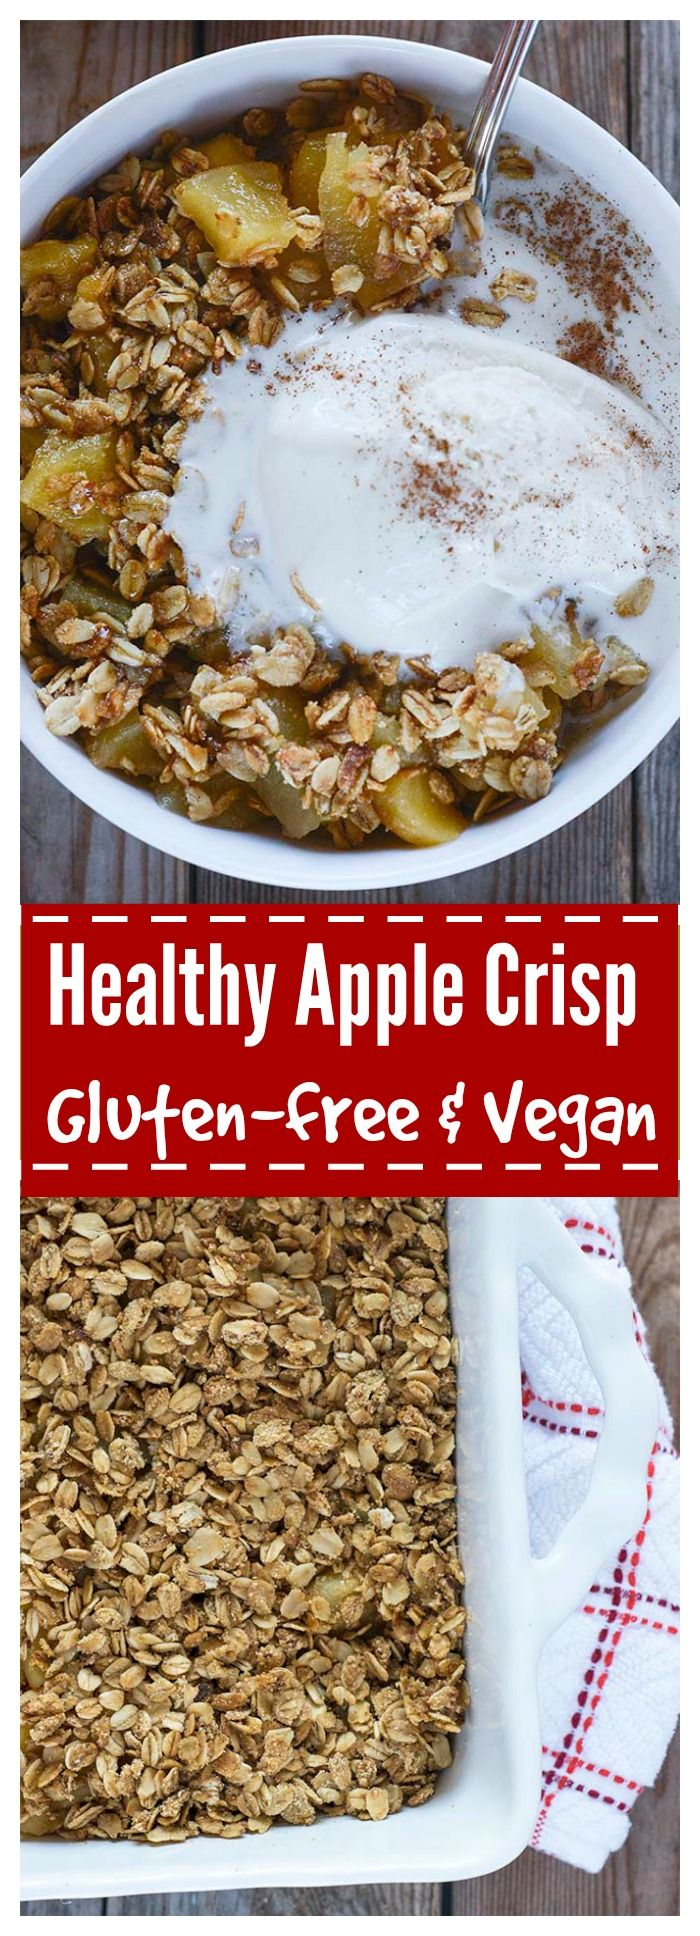 Gluten-Free and Vegan Apple Crisp. The perfect comfort dessert for Thanksgiving!